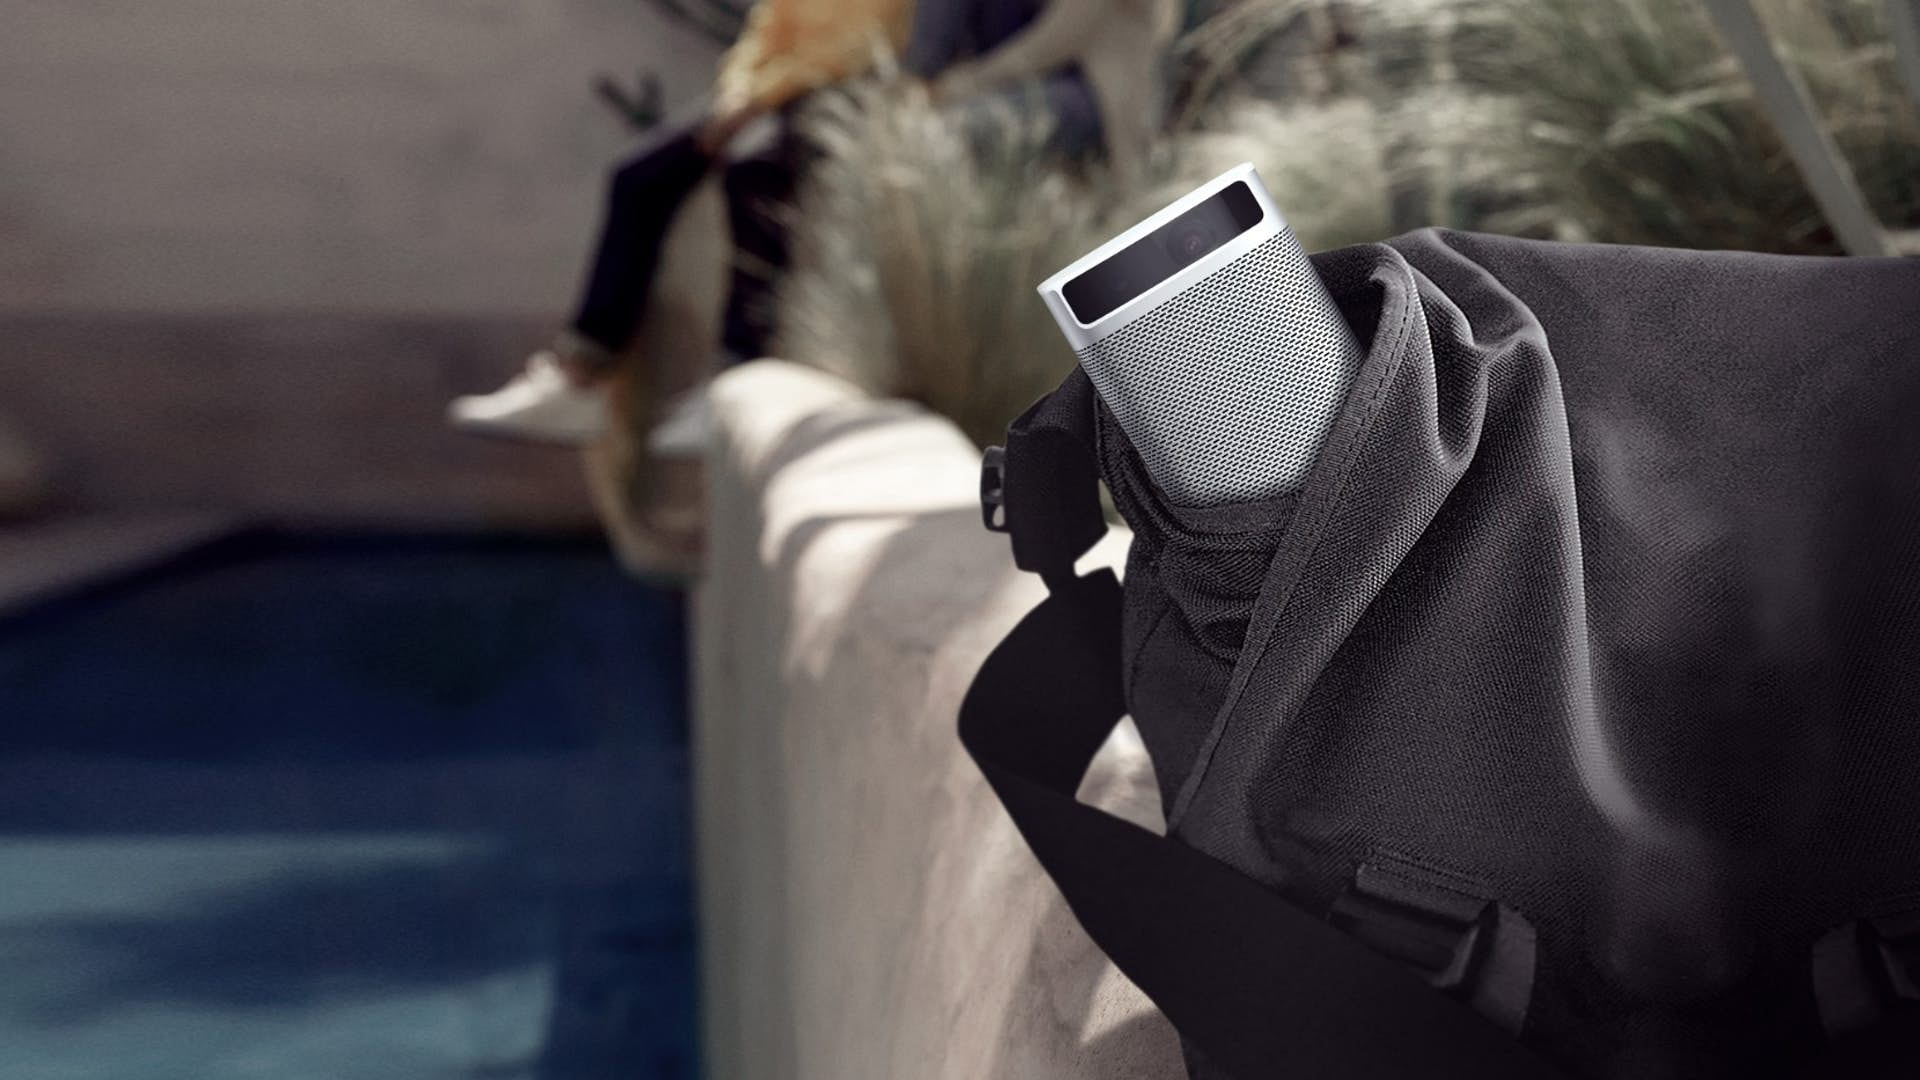 Mini Projector fits in backpack